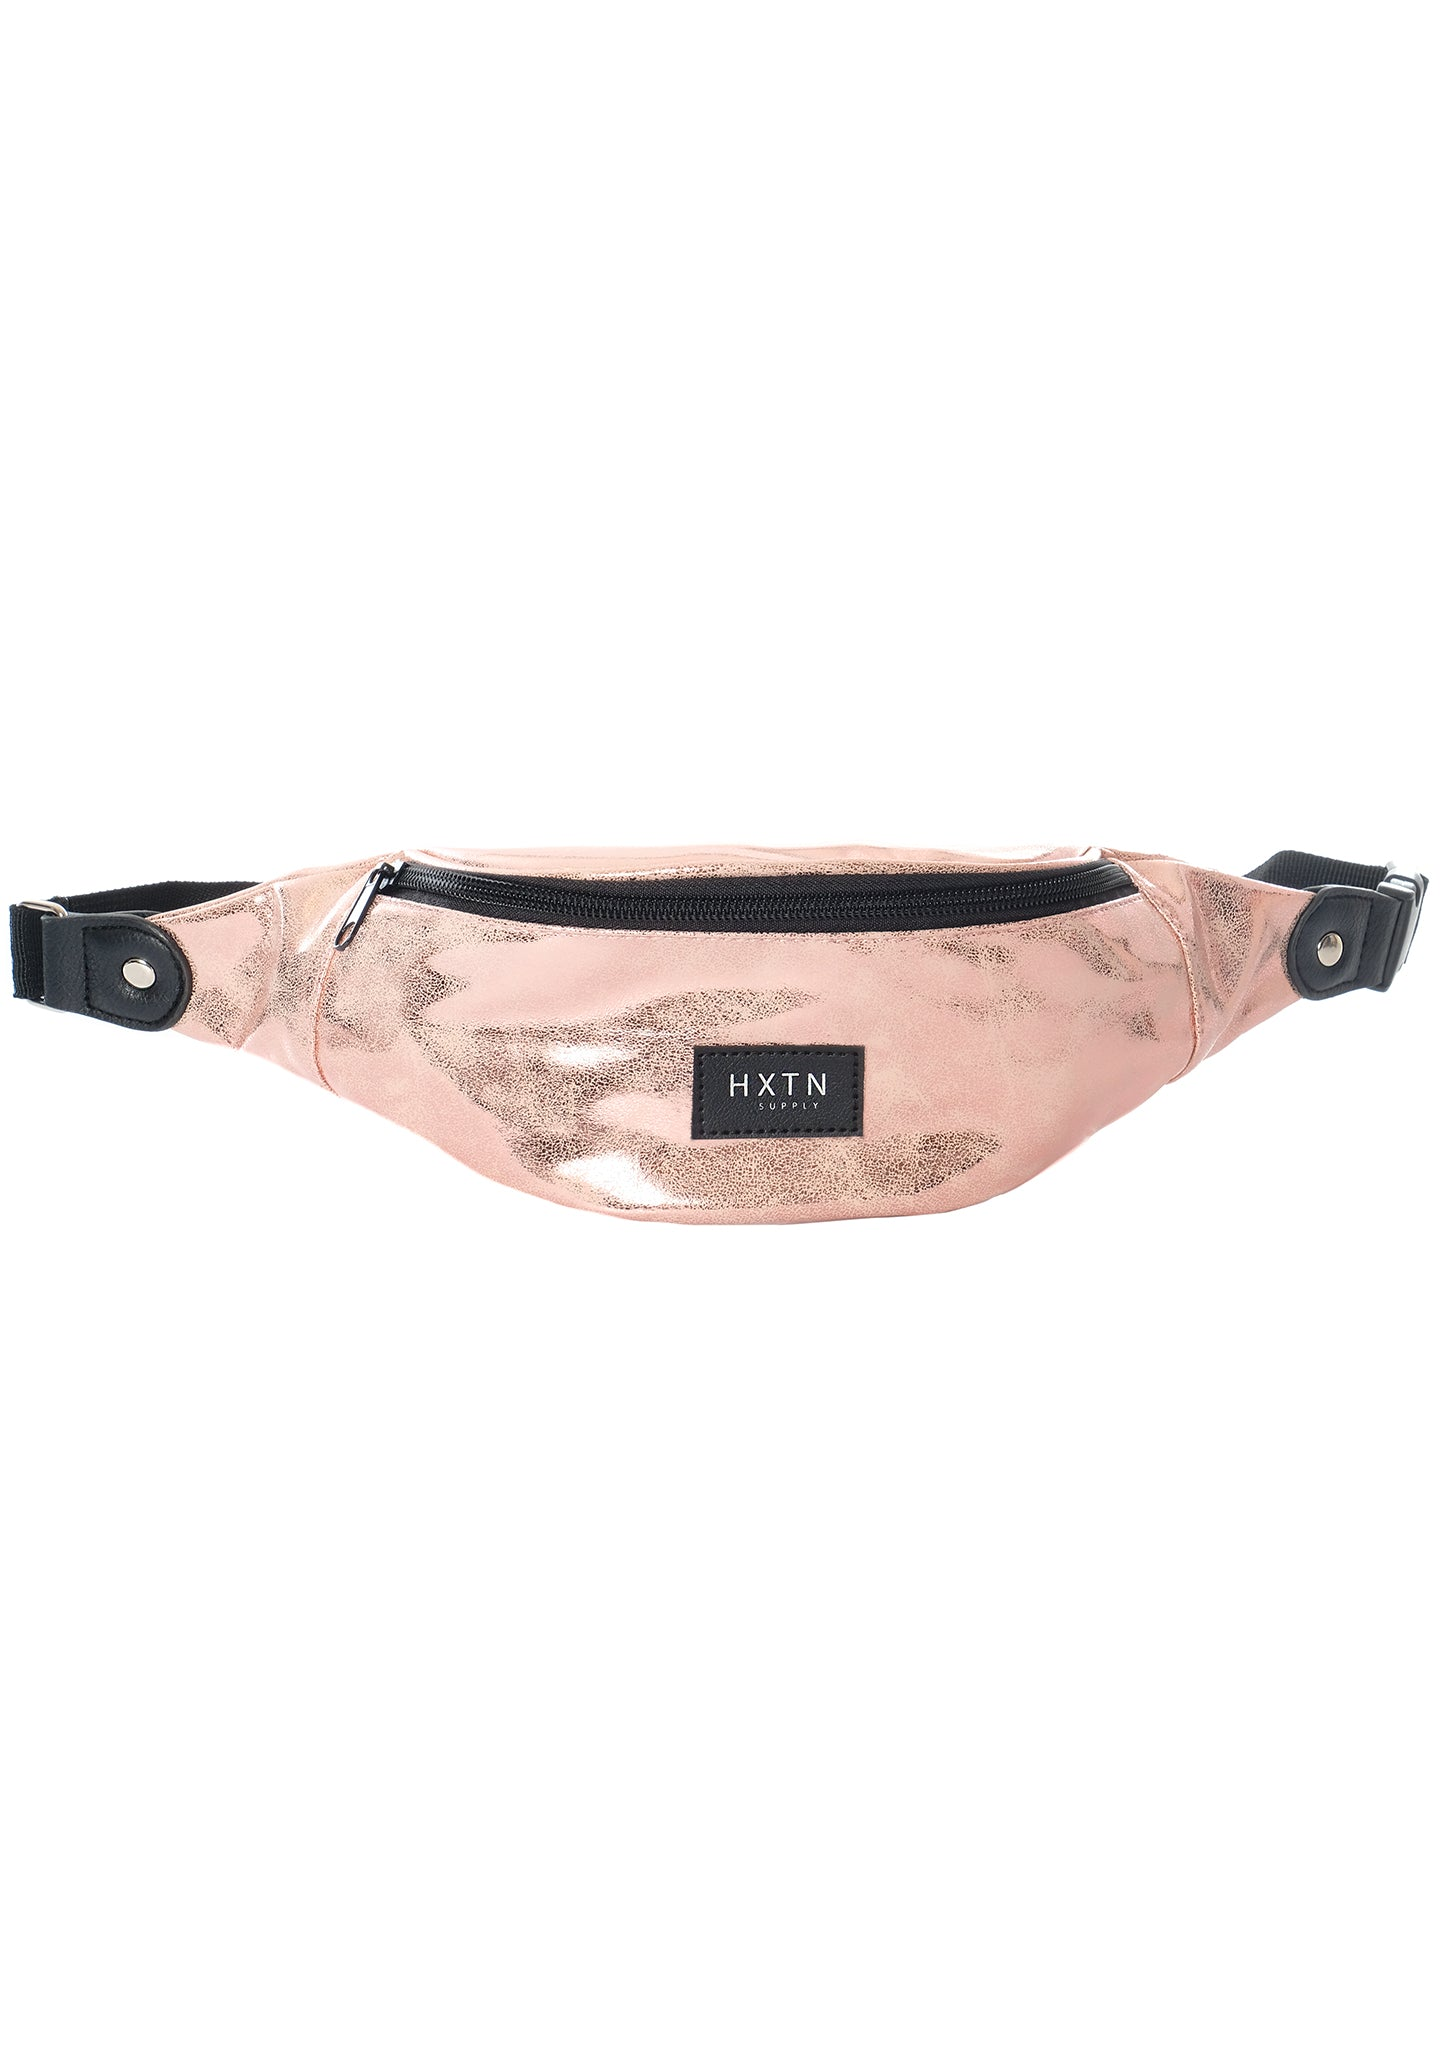 Battle Angel Metallic One Bum Bag in Rose Gold